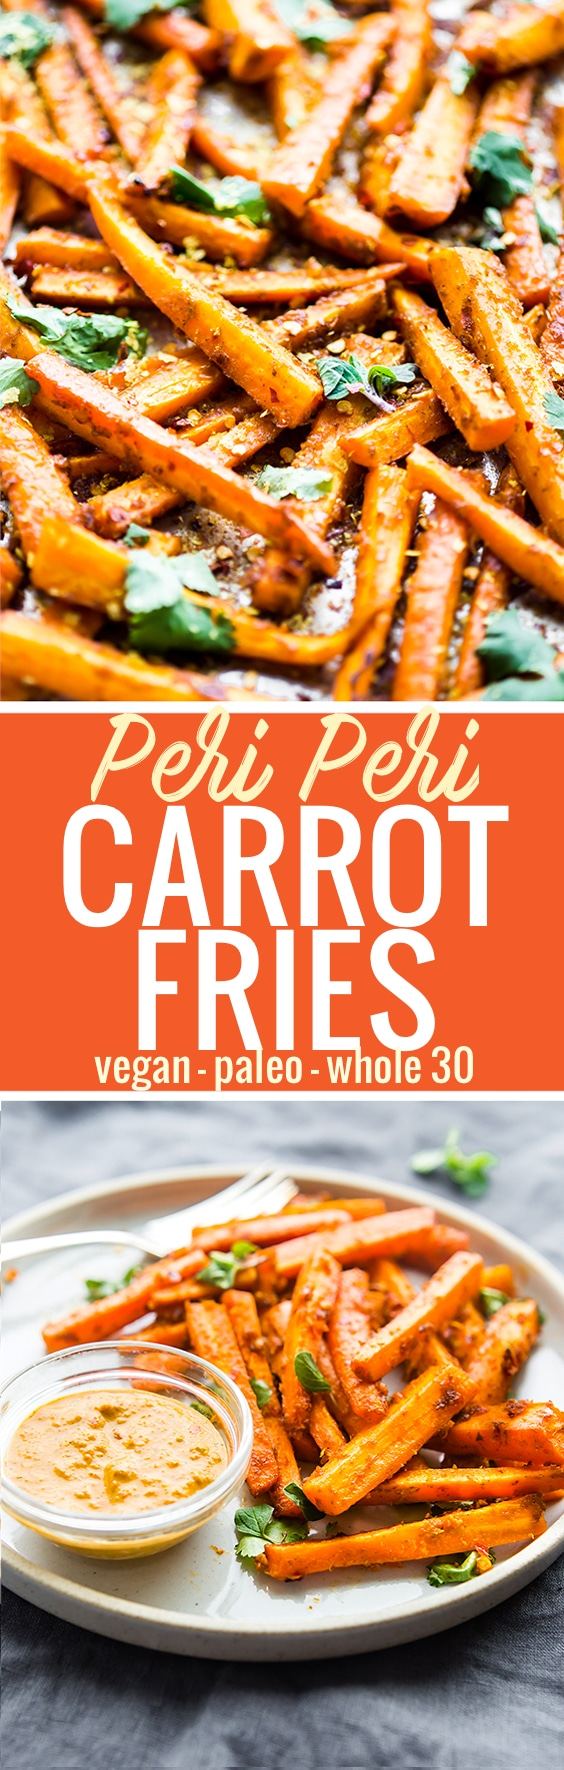 These Peri Peri oven baked carrot fries are gonna knock your socks off ...